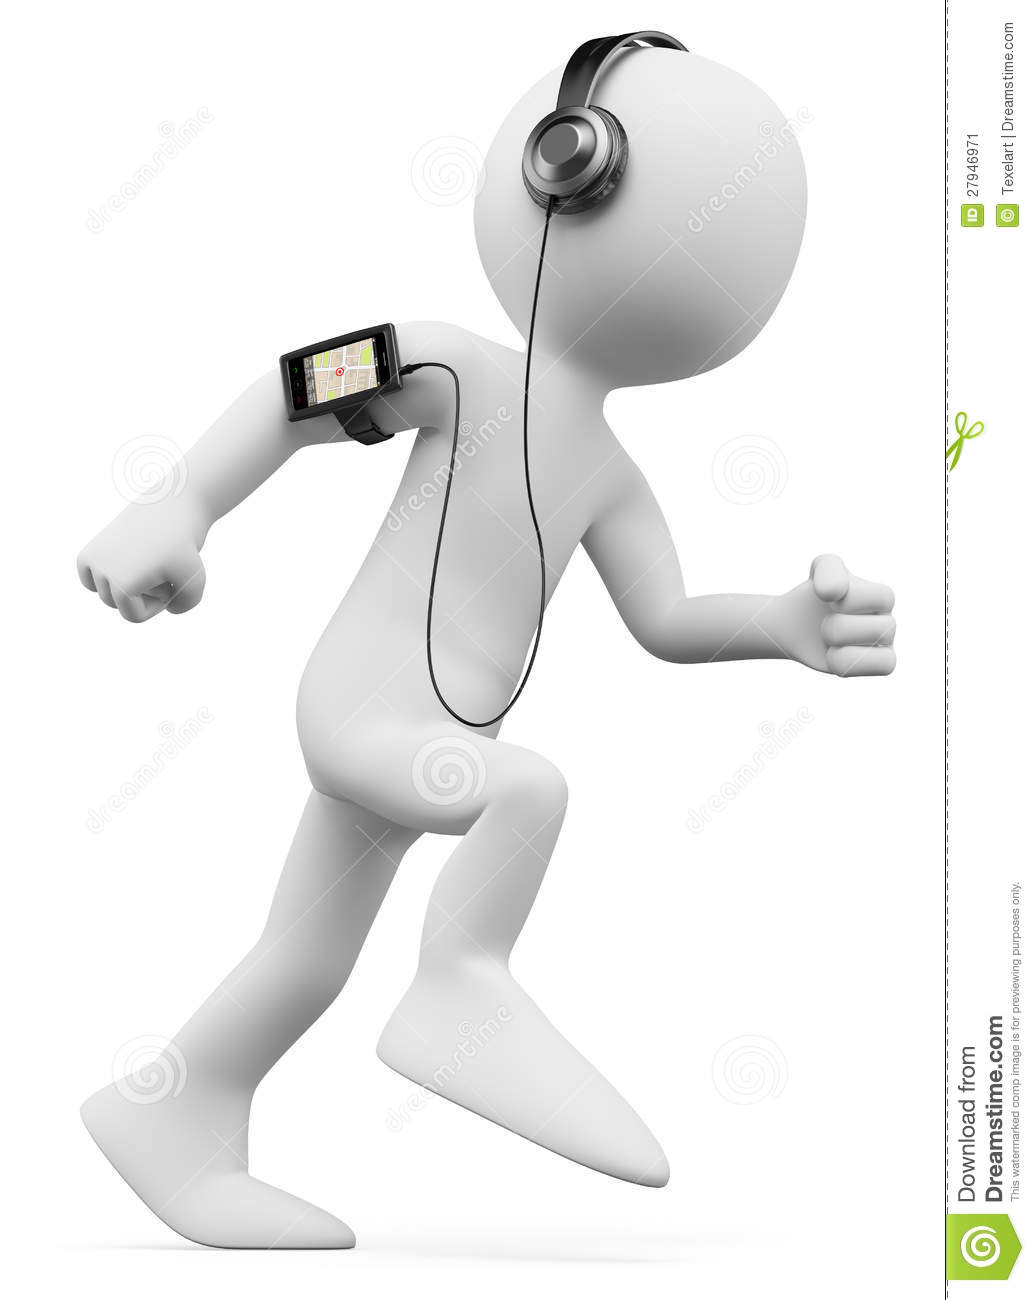 3d white person jogging with a mobile phone with gps and mp3 on the